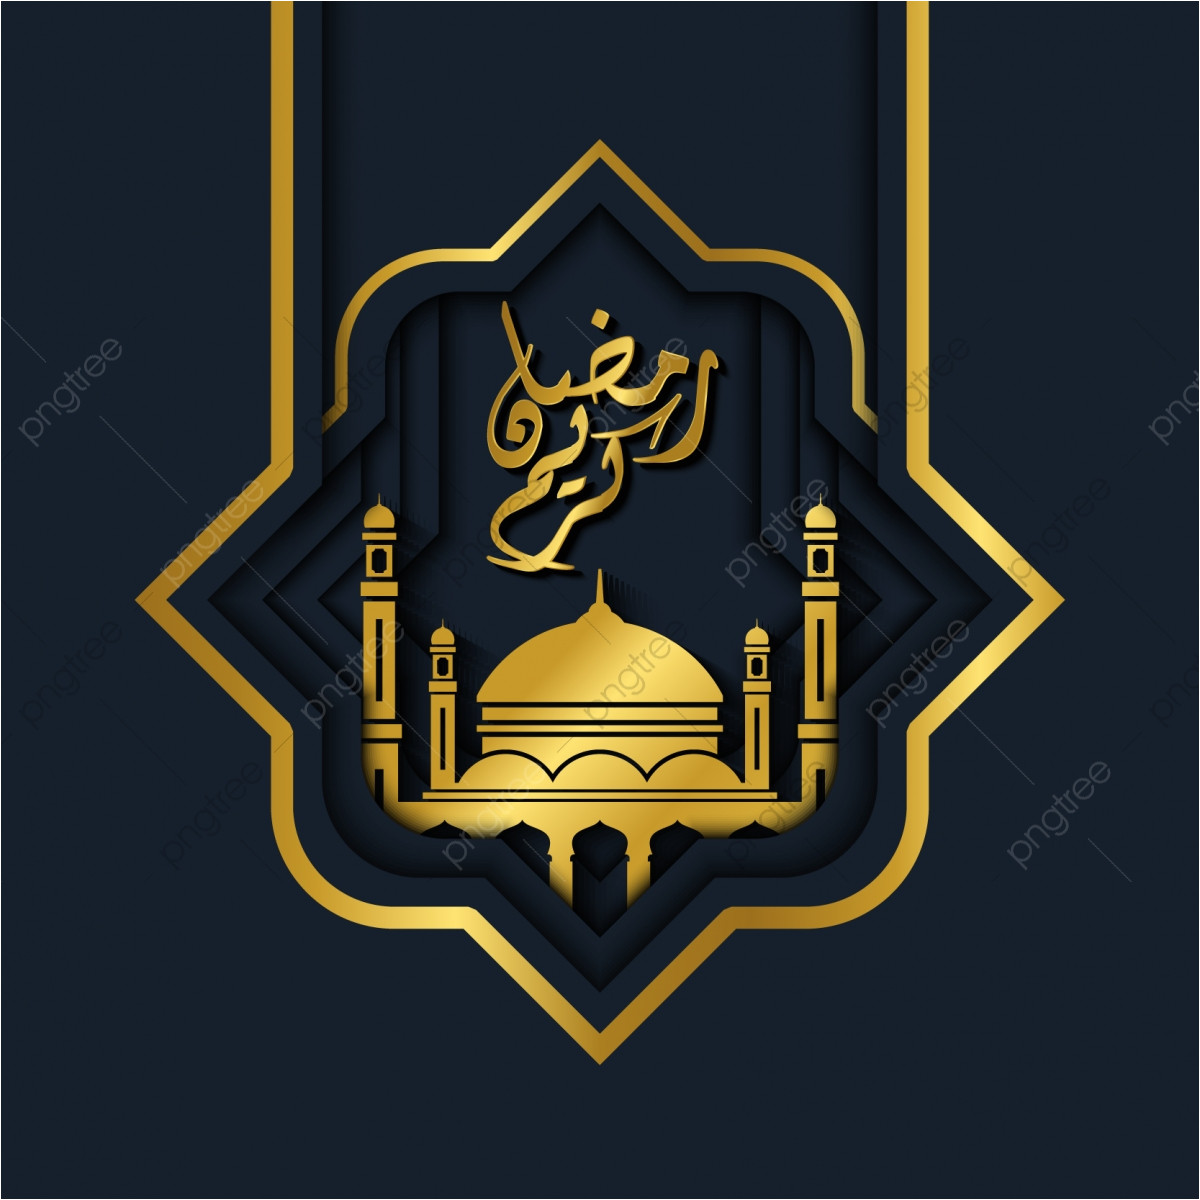 pngtree ramadan kareem islamic design with calligraphy and mosque illustration vector in png image 4173263 jpg